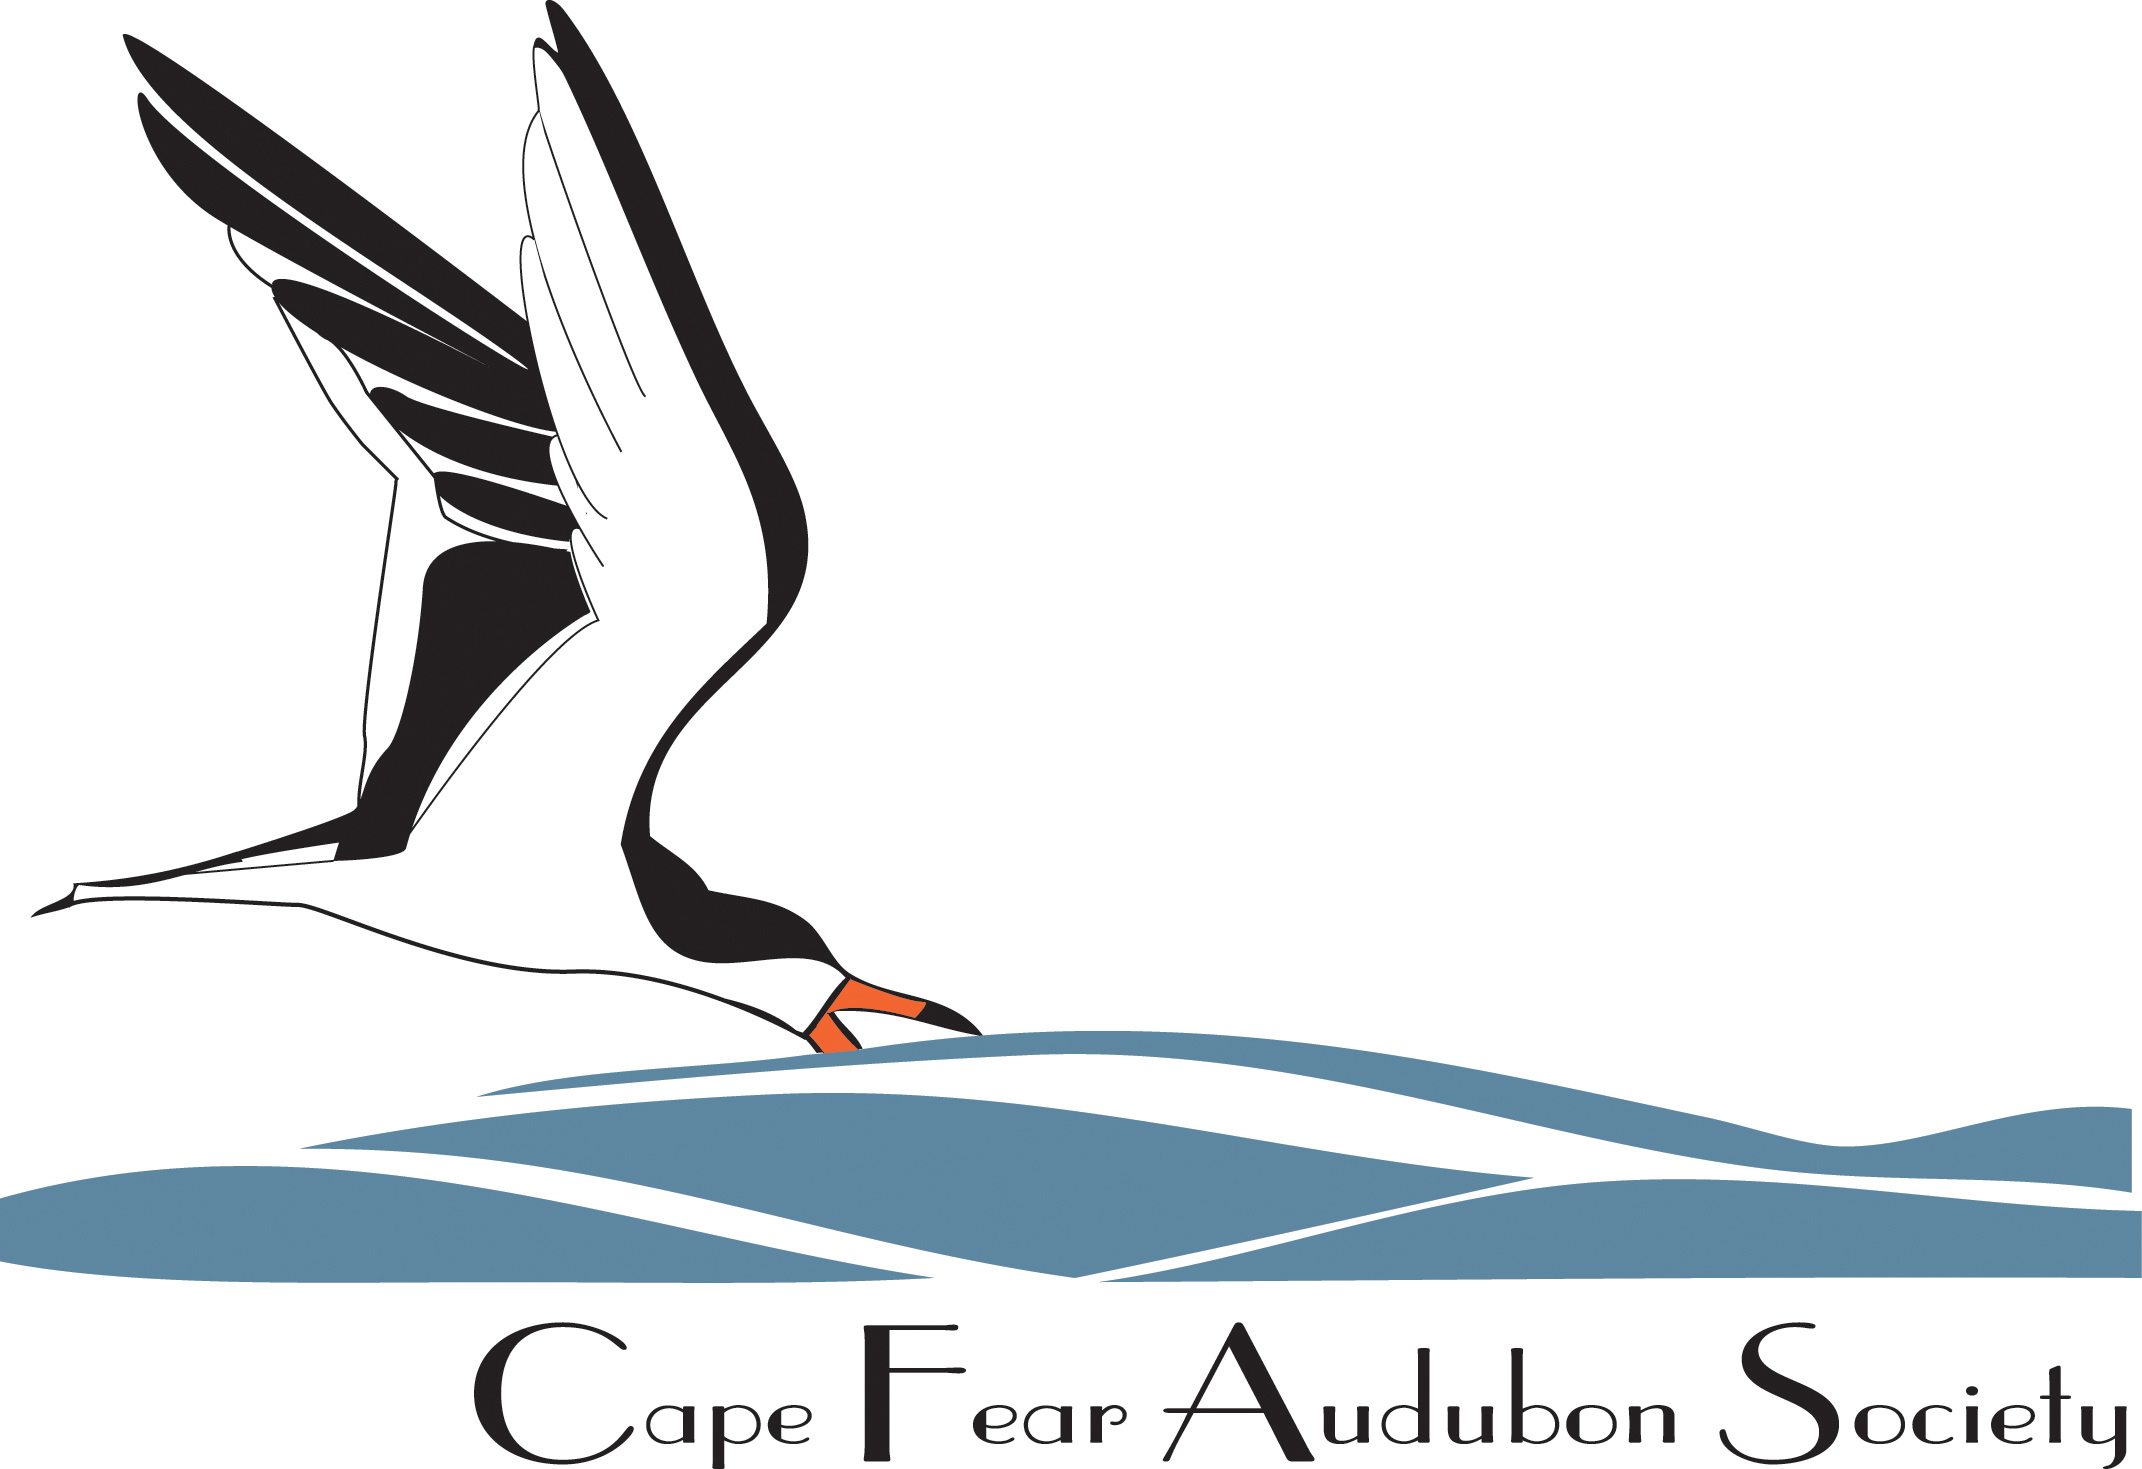 Cape Fear Audubon Society